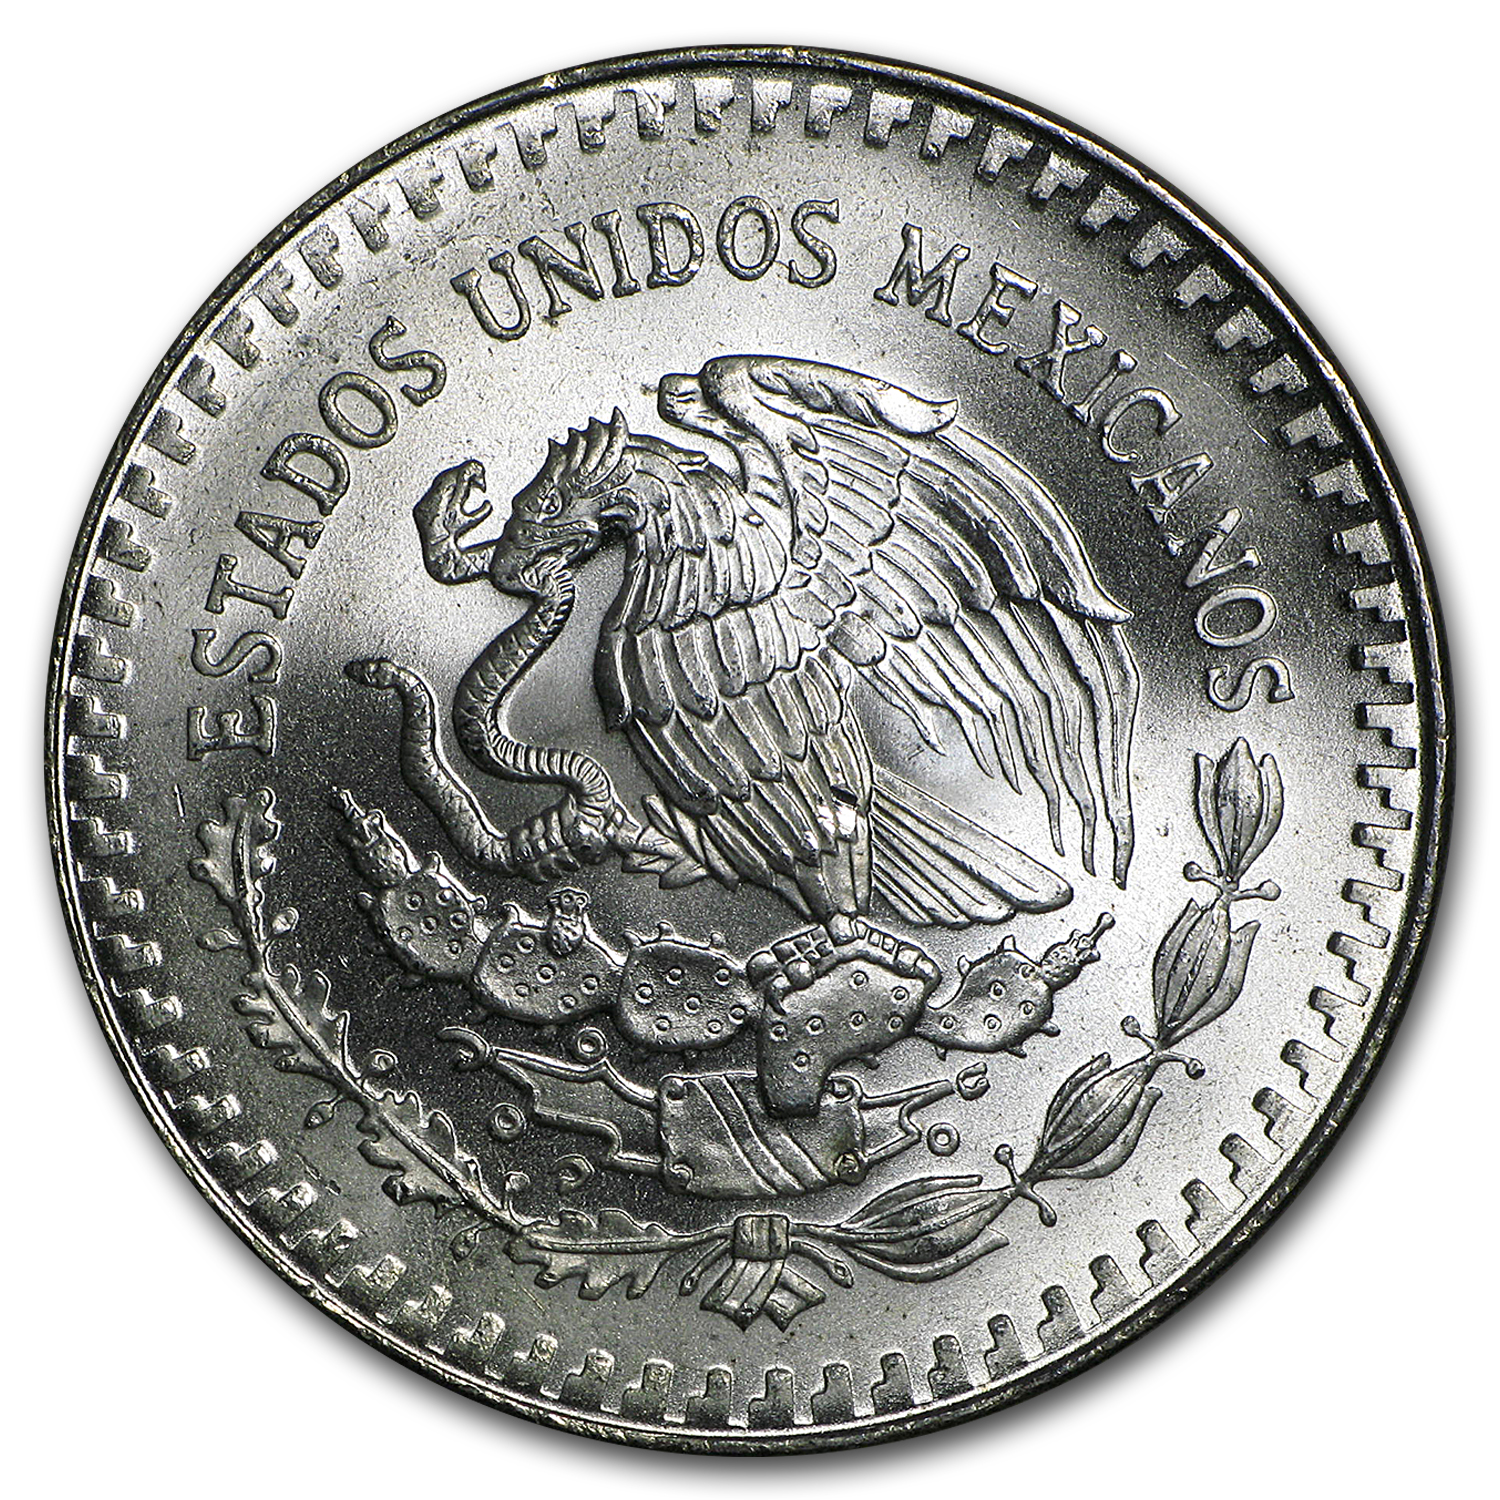 1988 1 oz Silver Mexican Libertad (Brilliant Uncirculated)